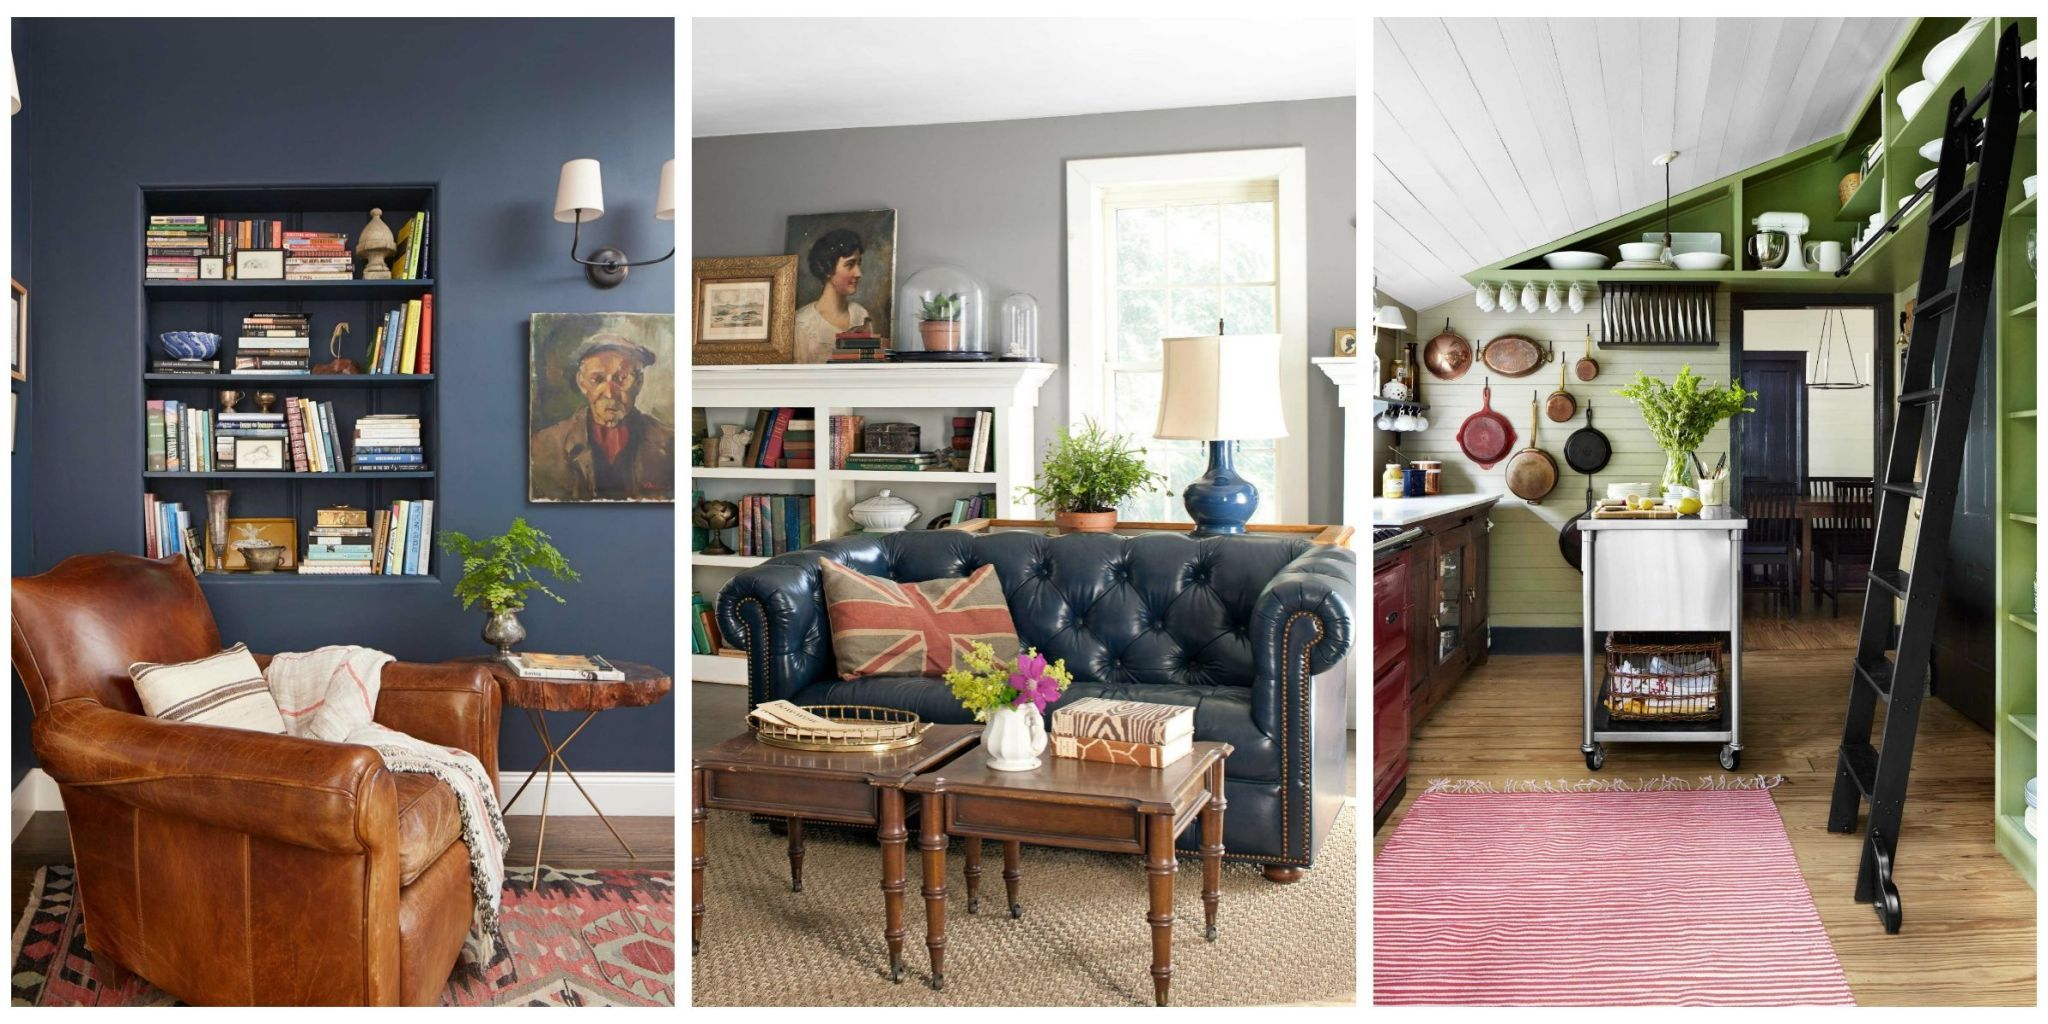 It\u0027s easy to give your home that warm and cozy feeling with these paint colors and design ideas. & 23 Warm Paint Colors - Cozy Color Schemes